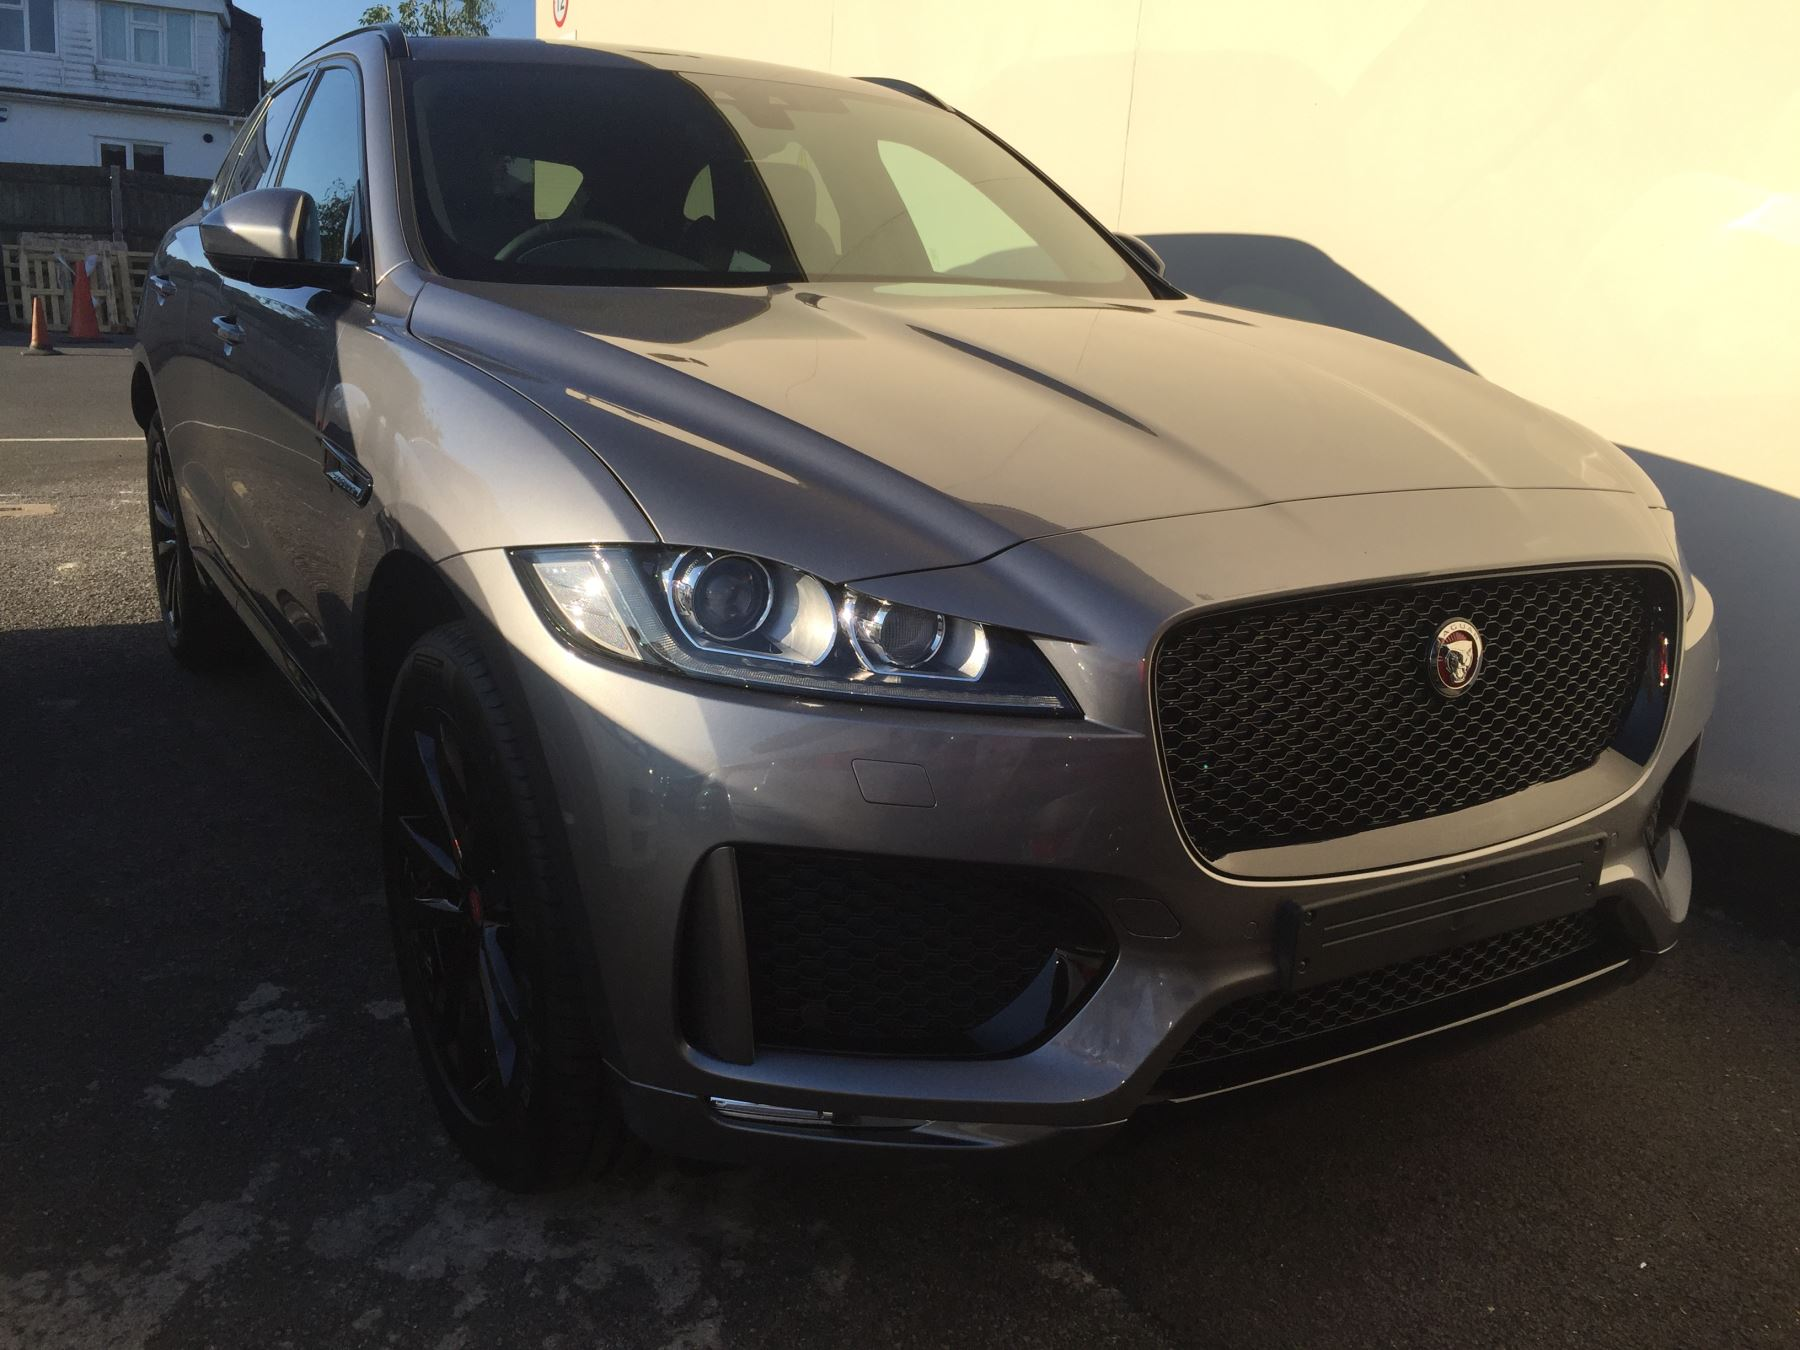 Jaguar F-PACE 2.0d 240 Chequered Flag AWD SPECIAL EDITION Diesel Automatic 5 door Estate (2020)